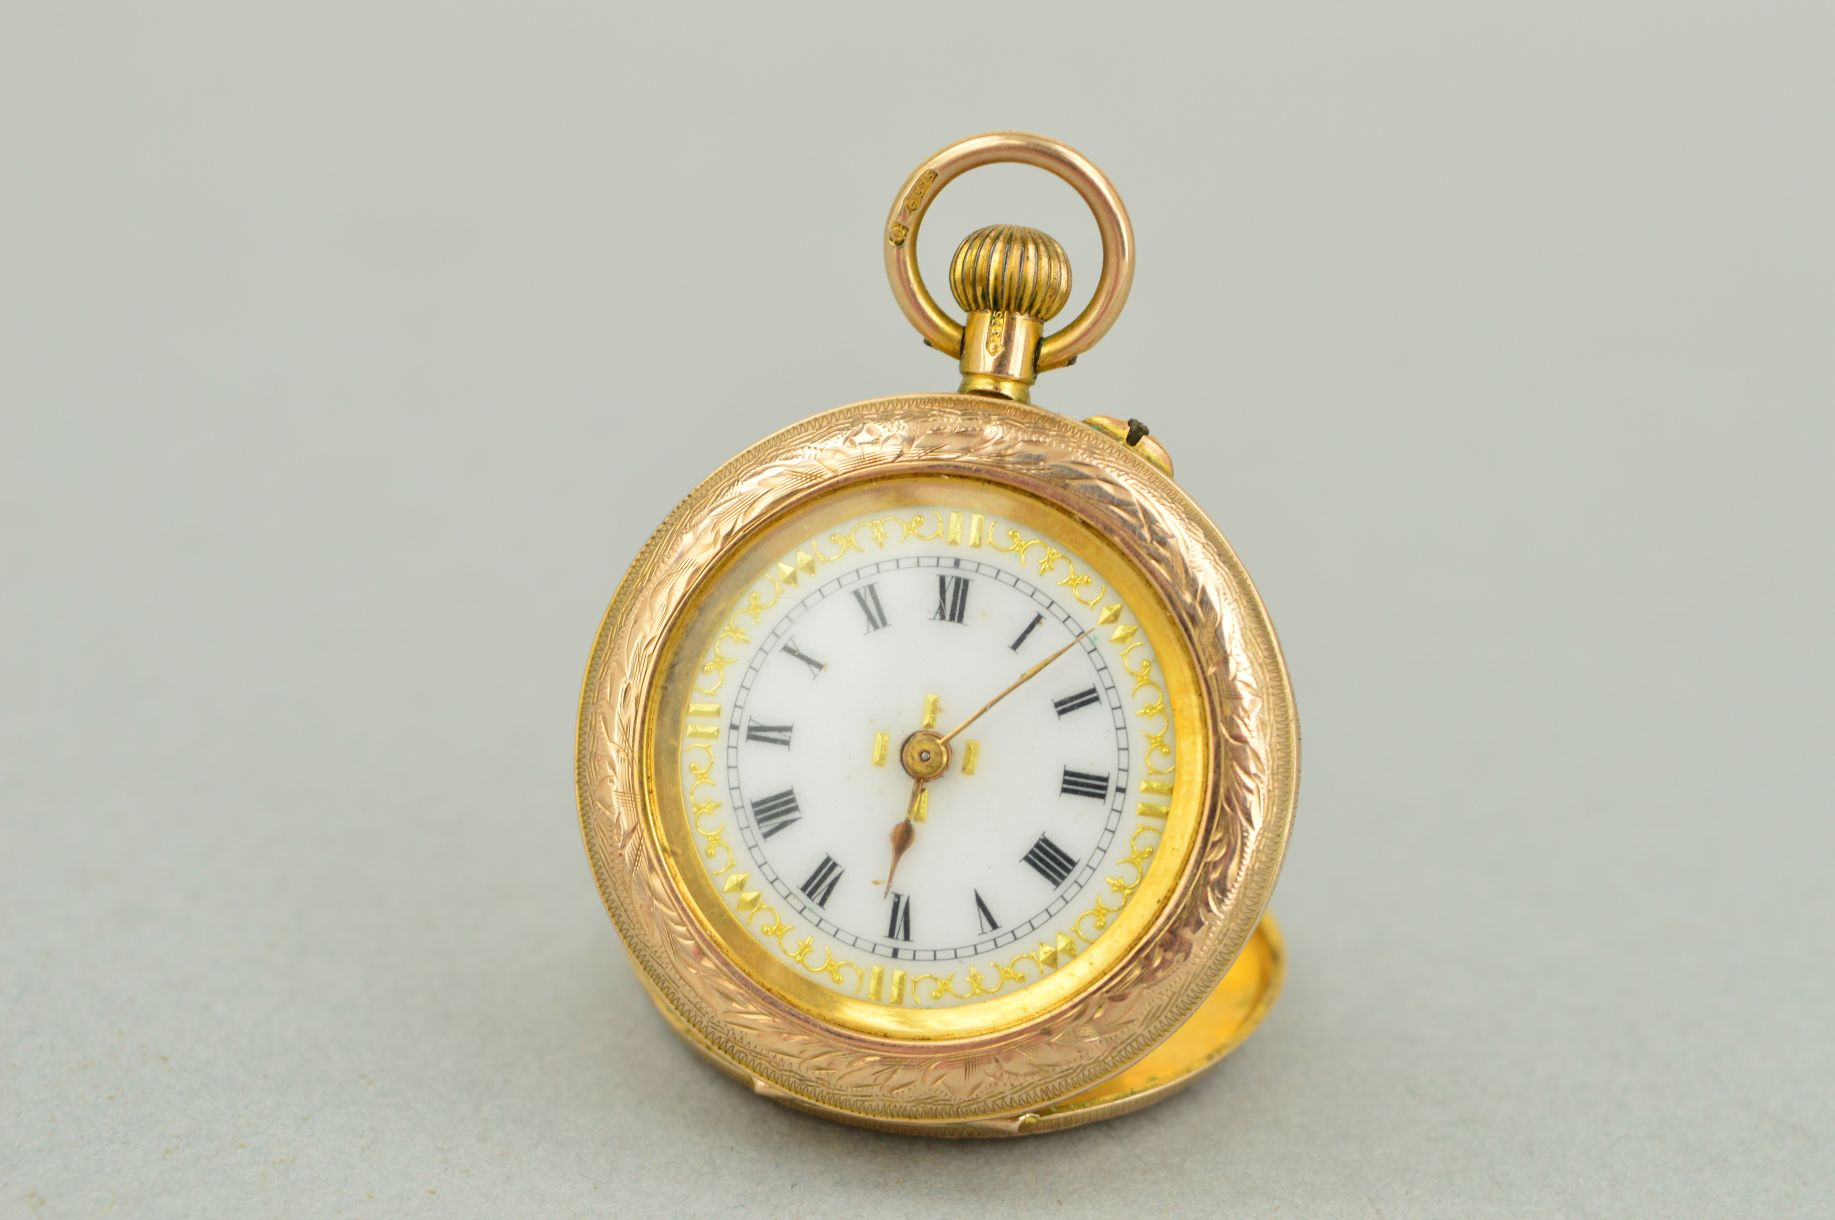 Lot 48 - AN EARLY 20TH CENTURY 9CT GOLD SMALL POCKET WATCH, white gold inlaid enamel dial with black Roman